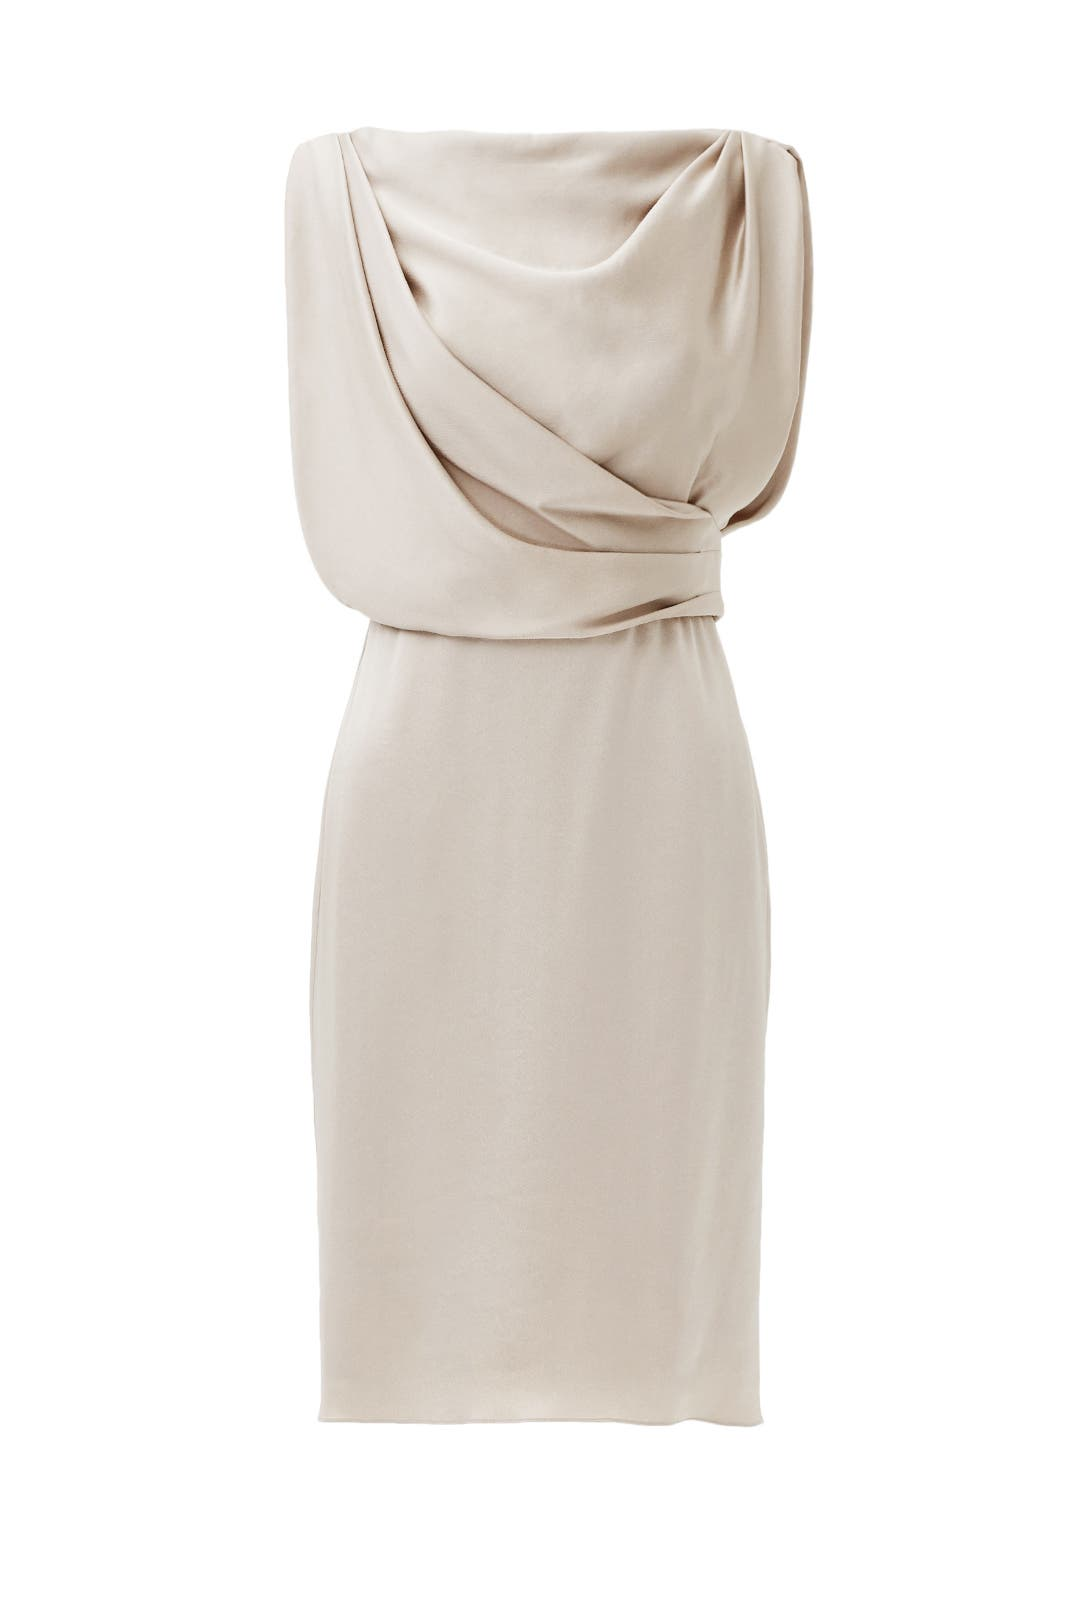 Taupe Grecian Draped Dress by Jason Wu for $275 | Rent the Runway